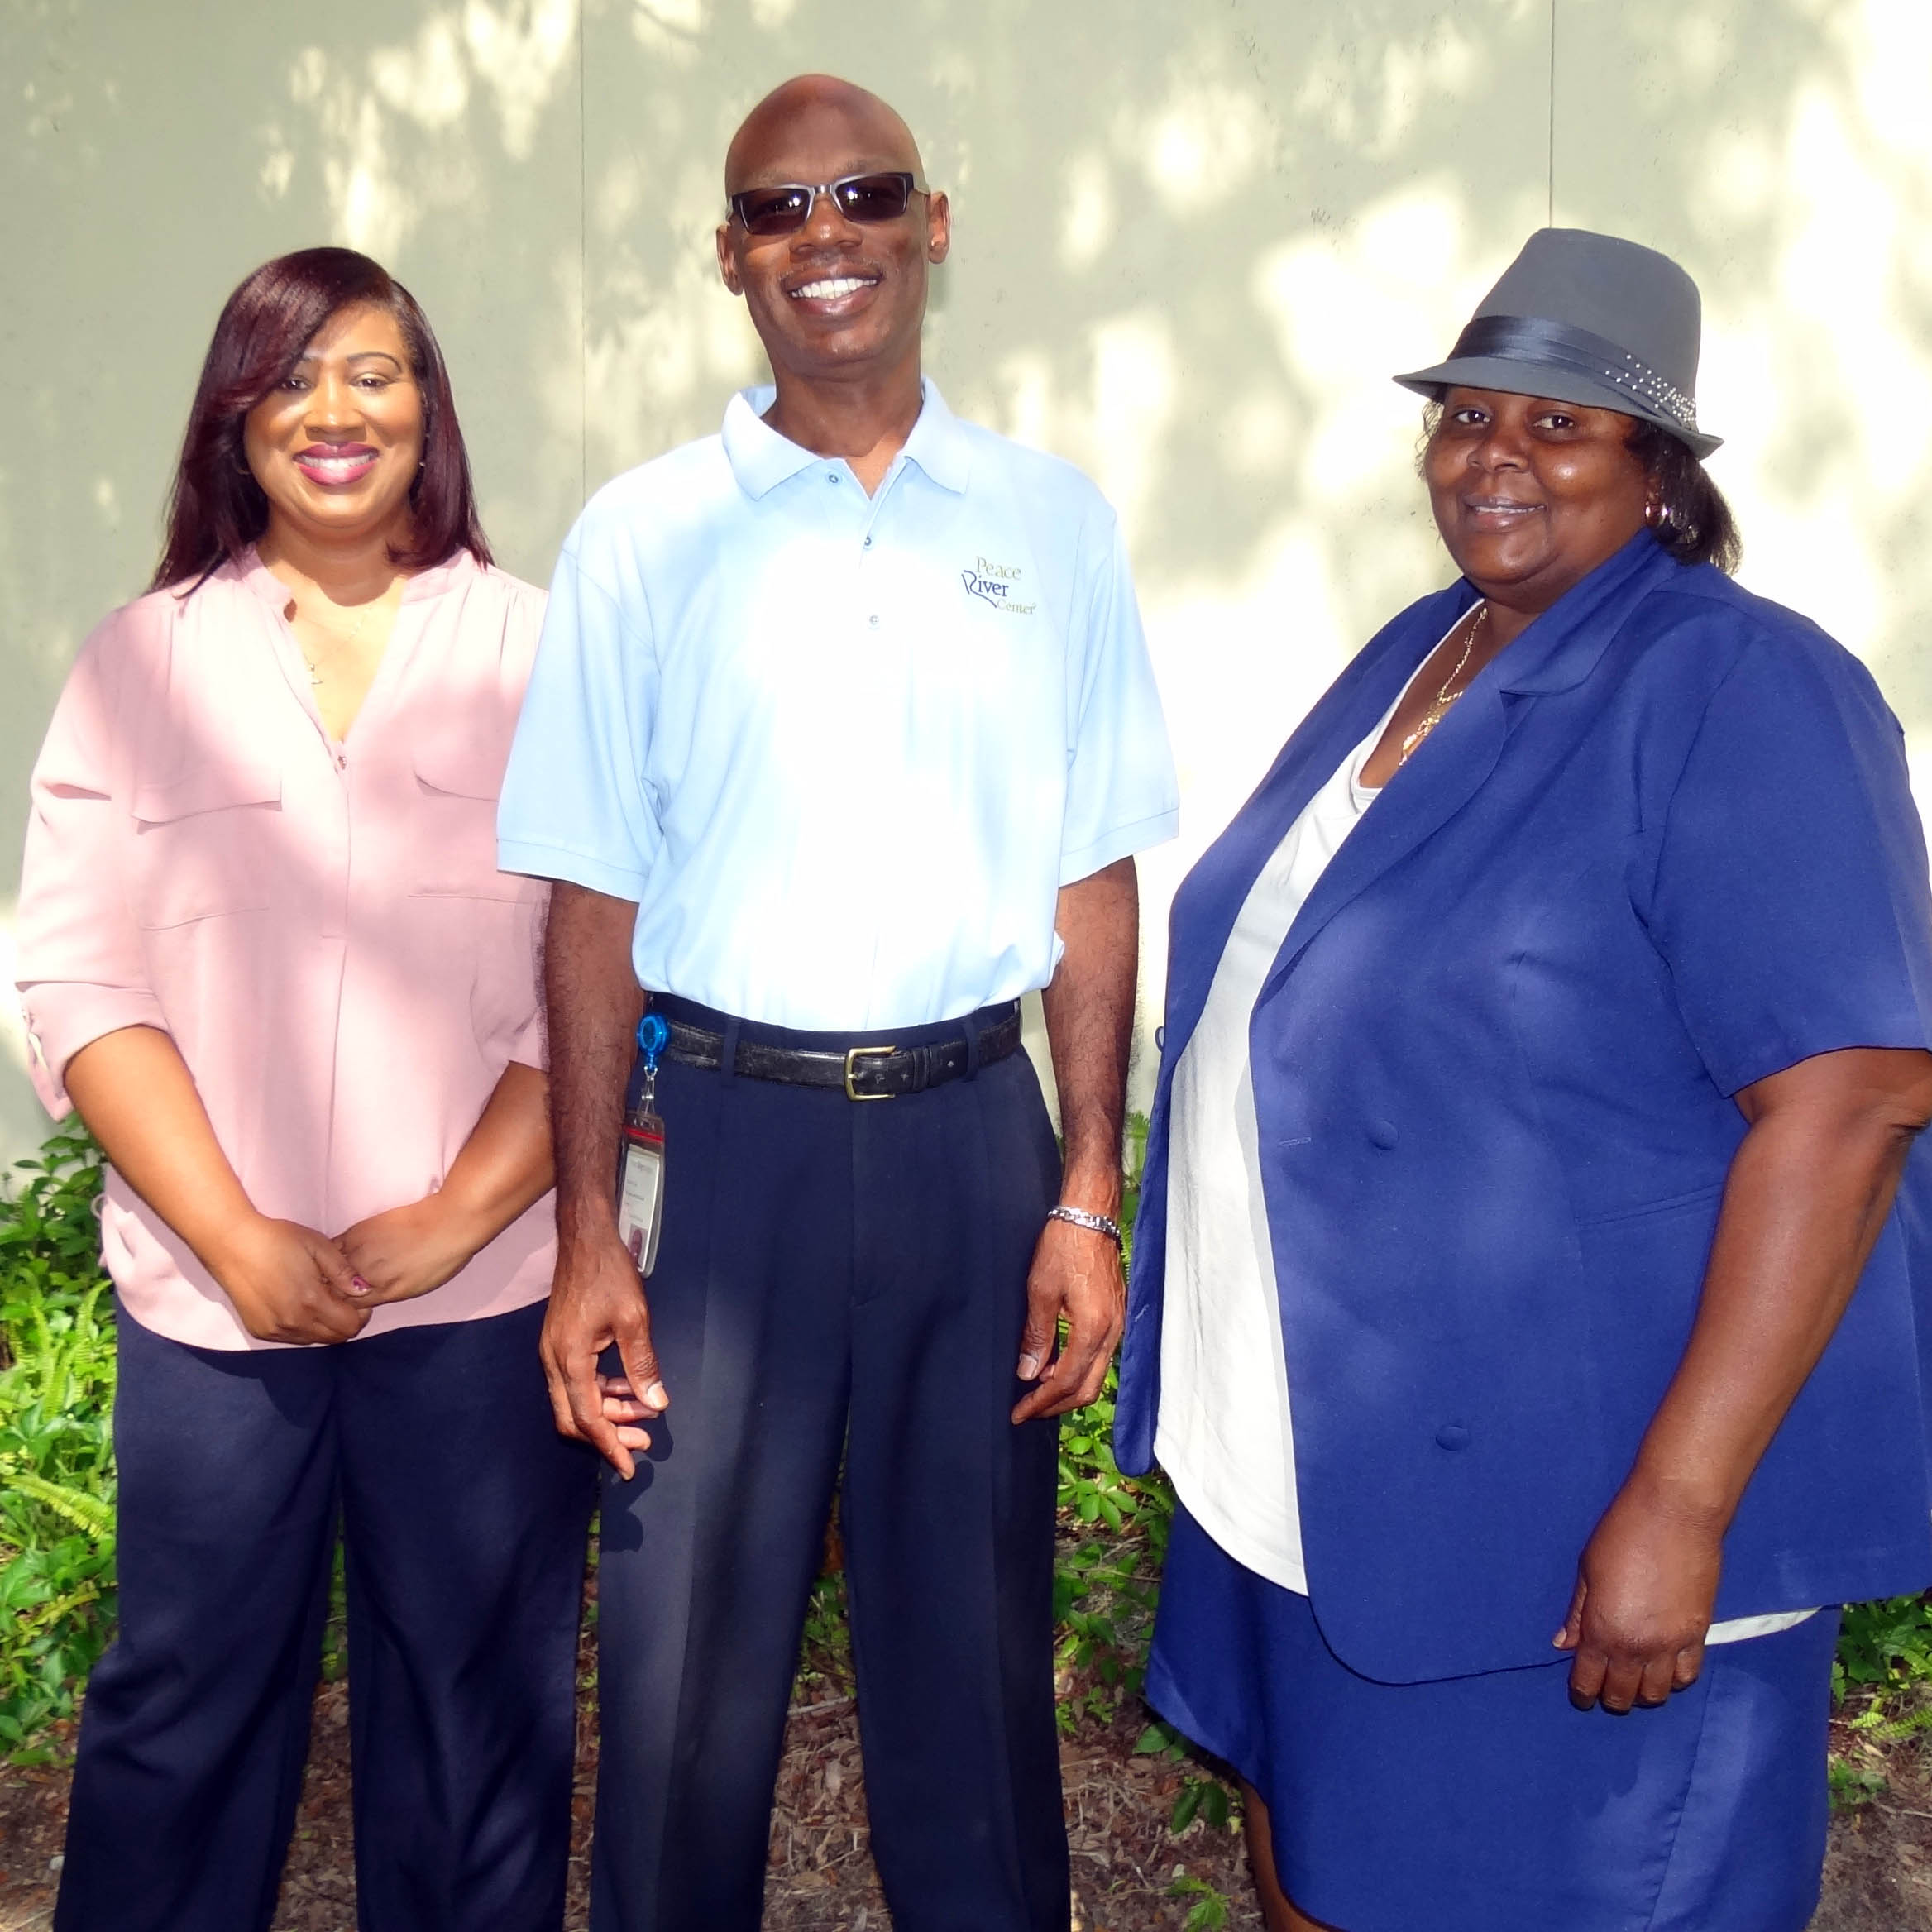 Supported Housing team: Kim Thomas, Cedric Cox, Angela Reid